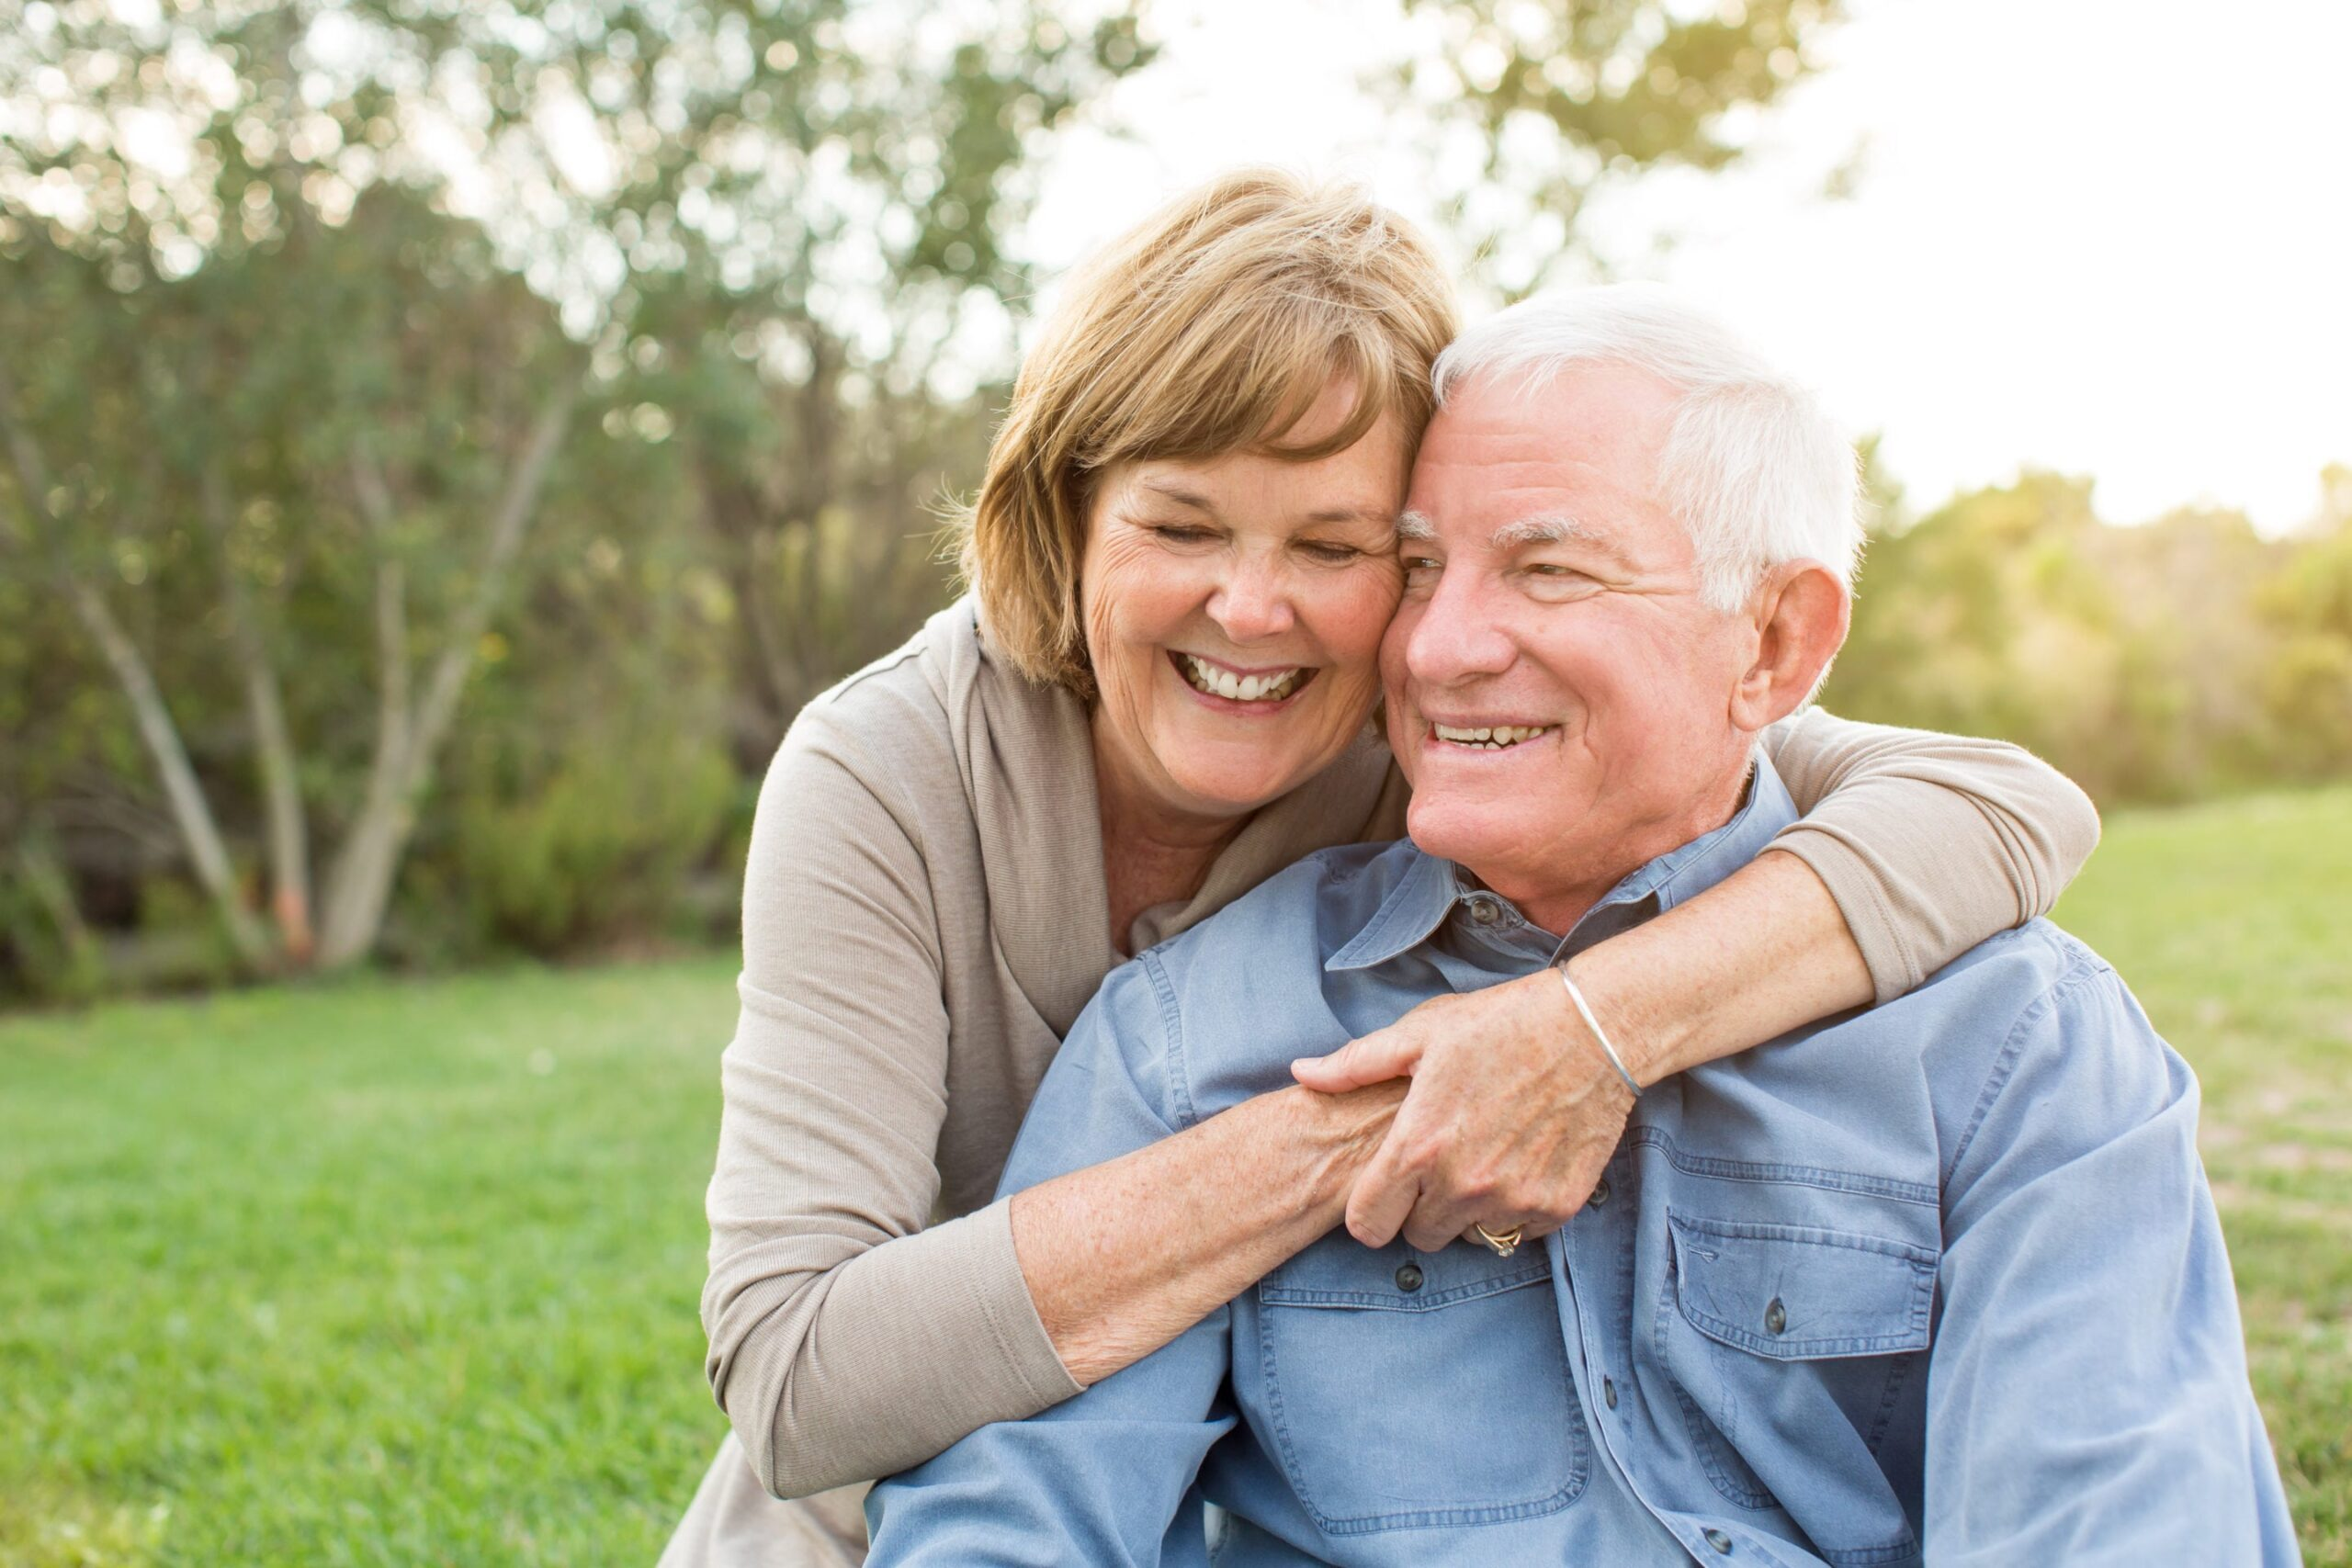 elderly couple hugging and smiling in park